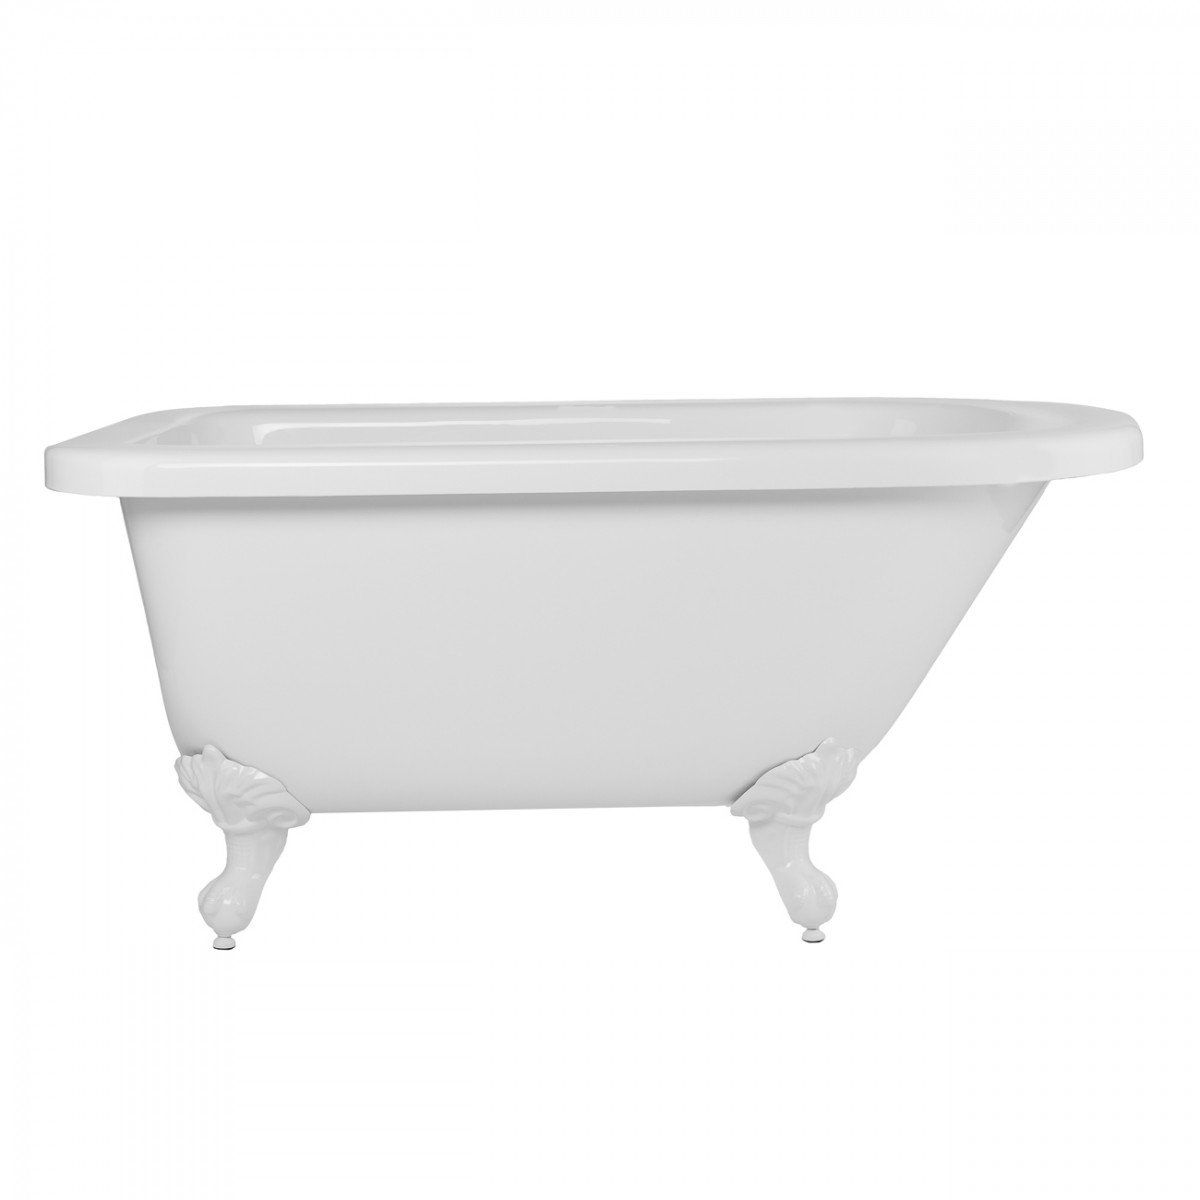 Savanna Acrylic Classic Clawfoot Tub No Faucet Drillings Ball